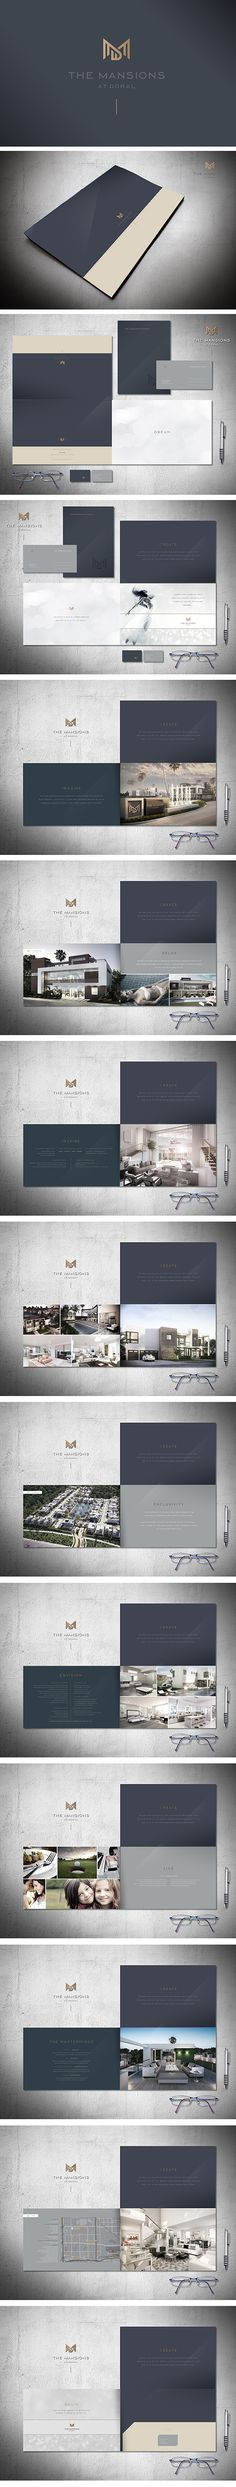 The Mansions at Doral brochure by Hector Batista, via Behance